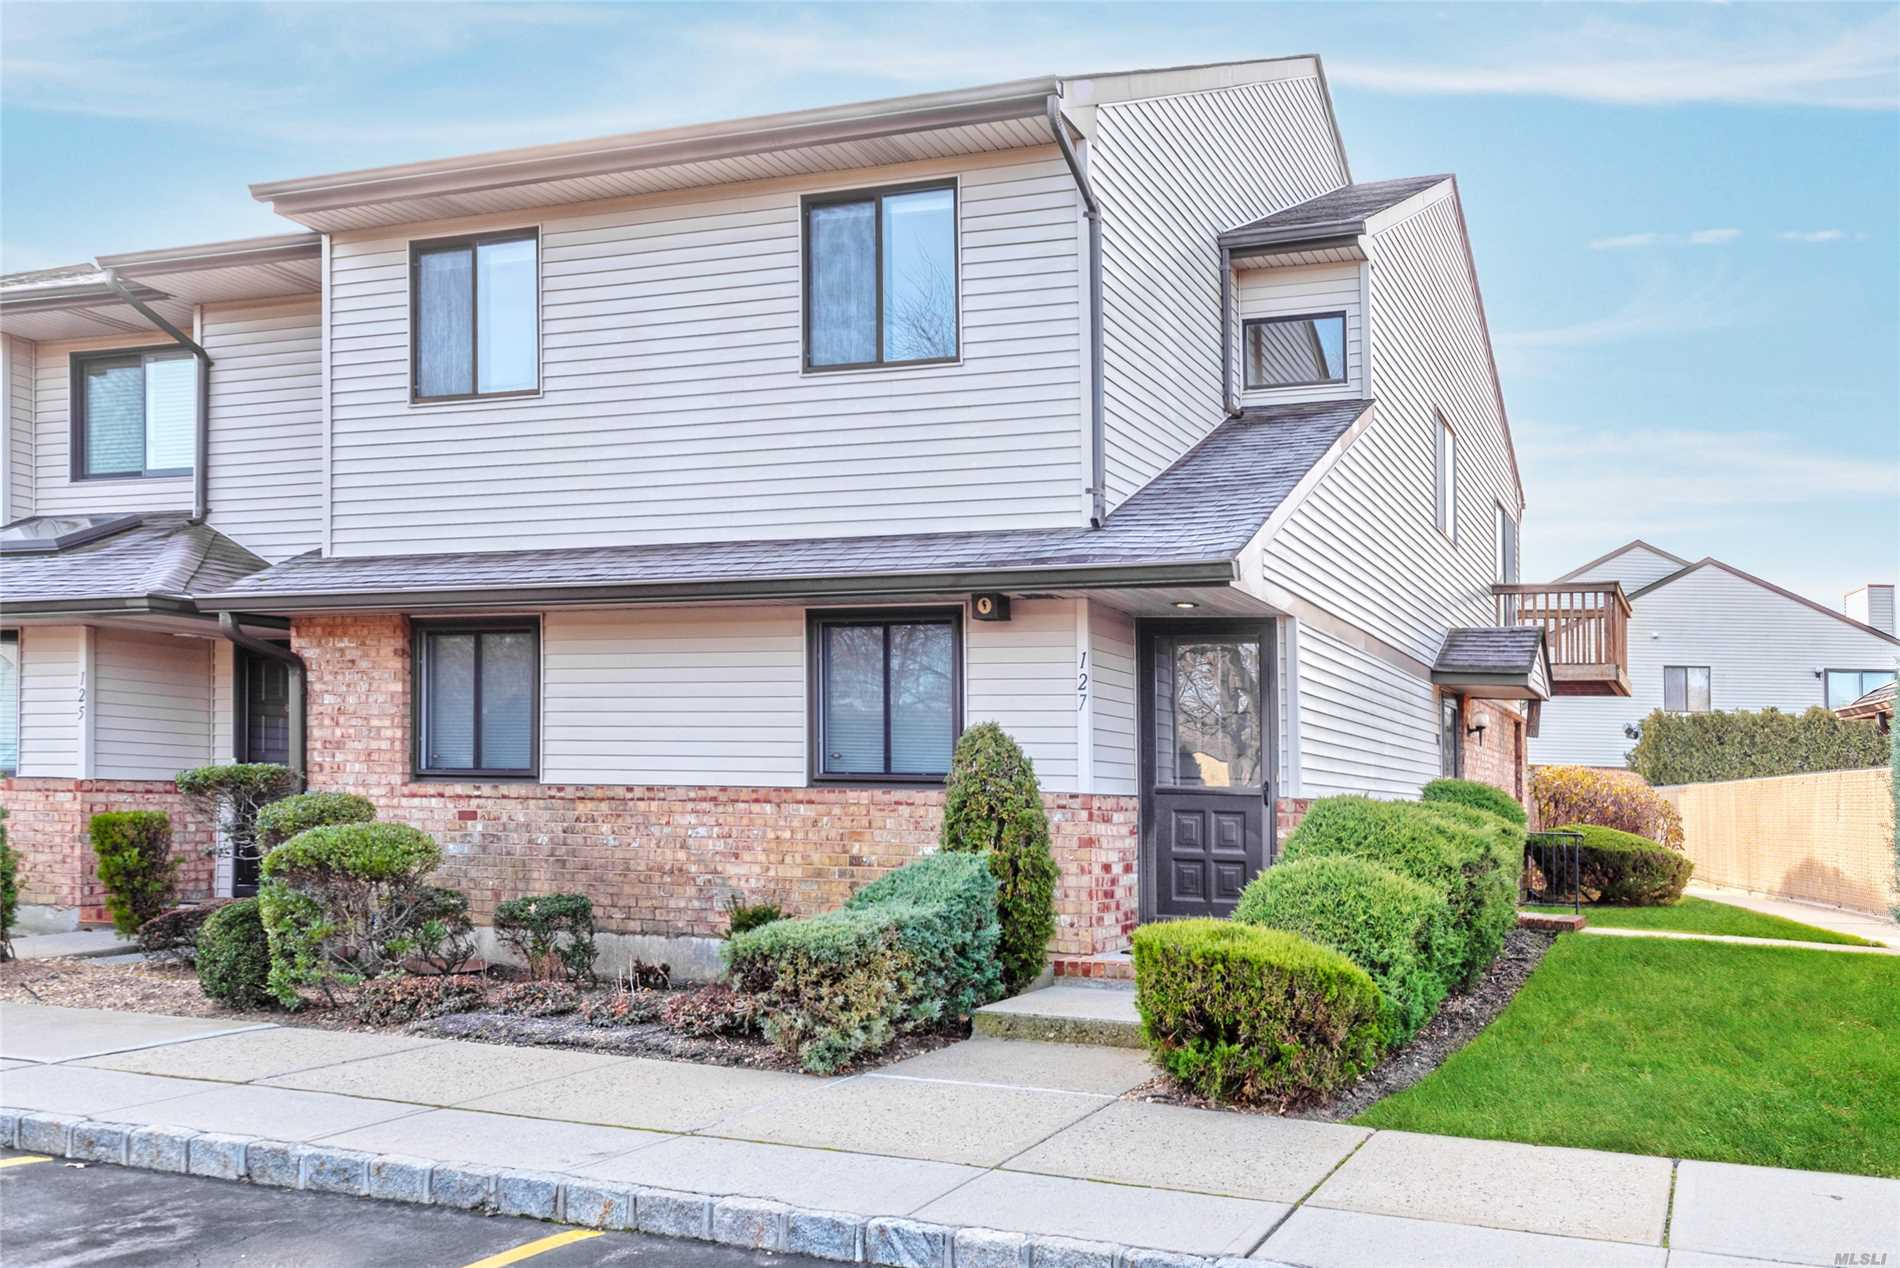 127 Laurel Ln - Wantagh, New York